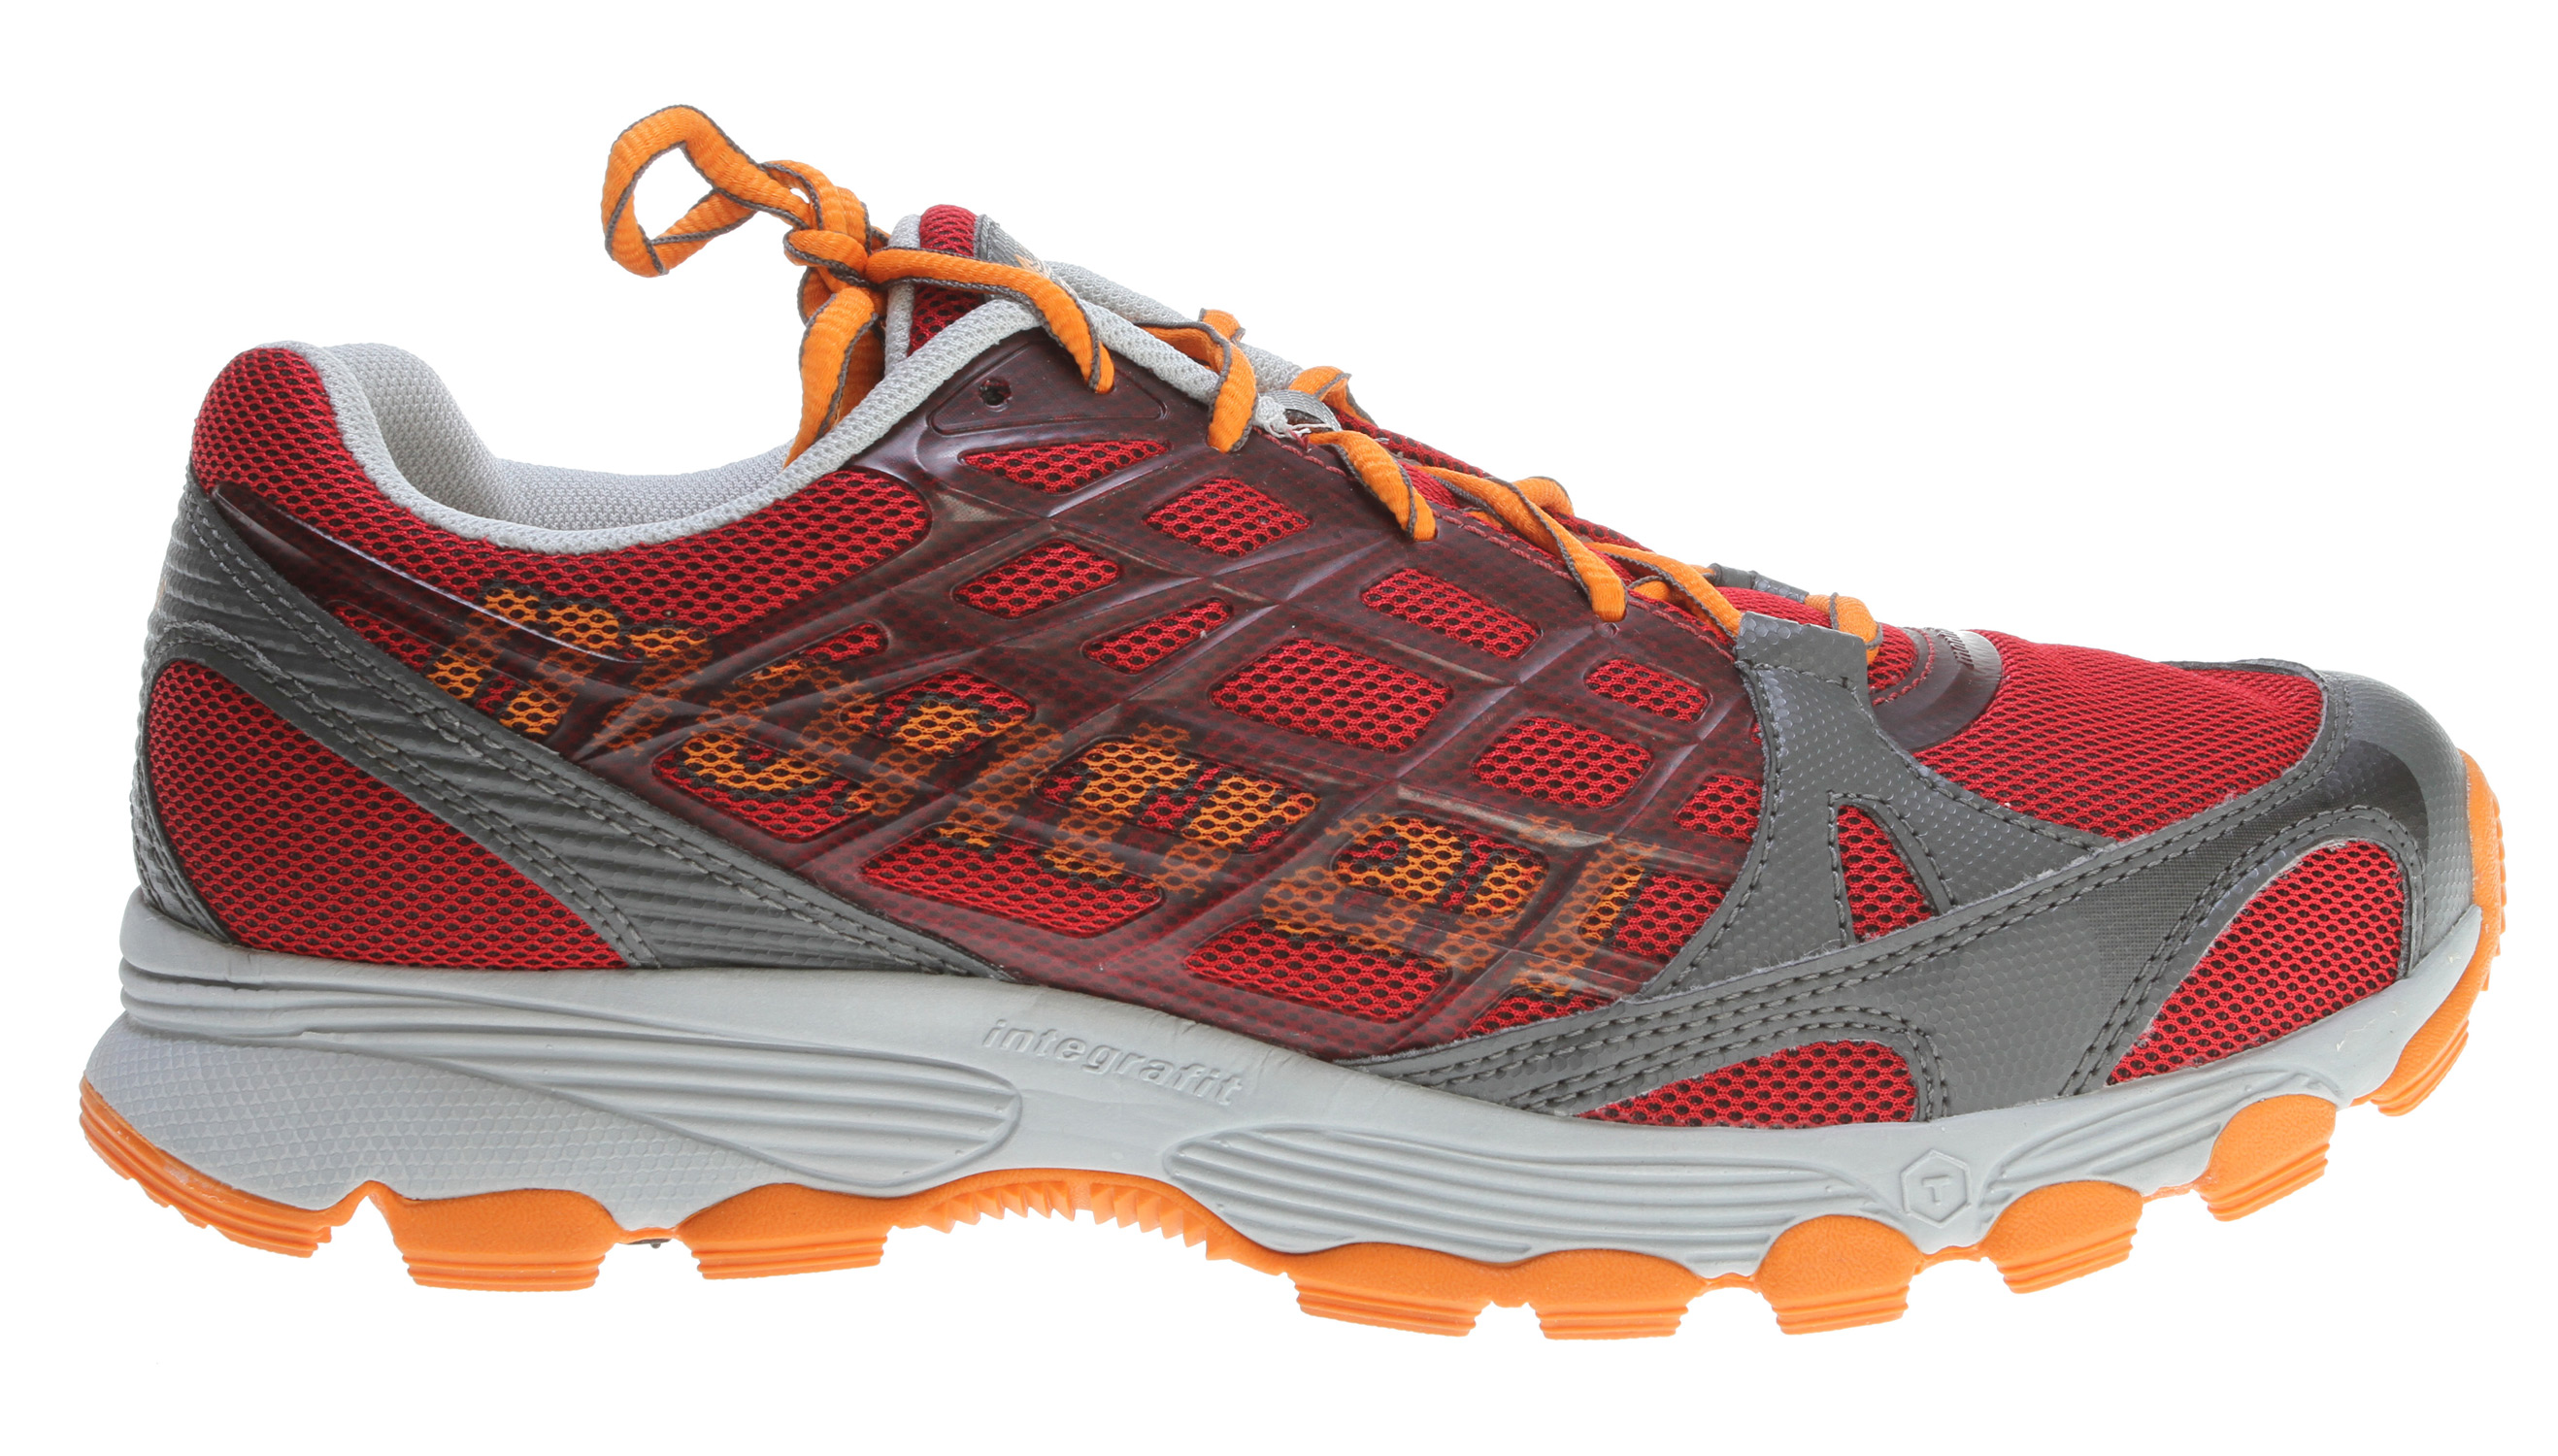 Camp and Hike Outstanding cushioning for a smooth ride over all types of trailsKey Features of the Montrail Rockridge Hiking Shoes: Weight: 11.4 oz / 323 g Durometer: 55 Asker C (+/-3 degrees) Fit Notes: Snug heel with a wider forefoot - $62.95